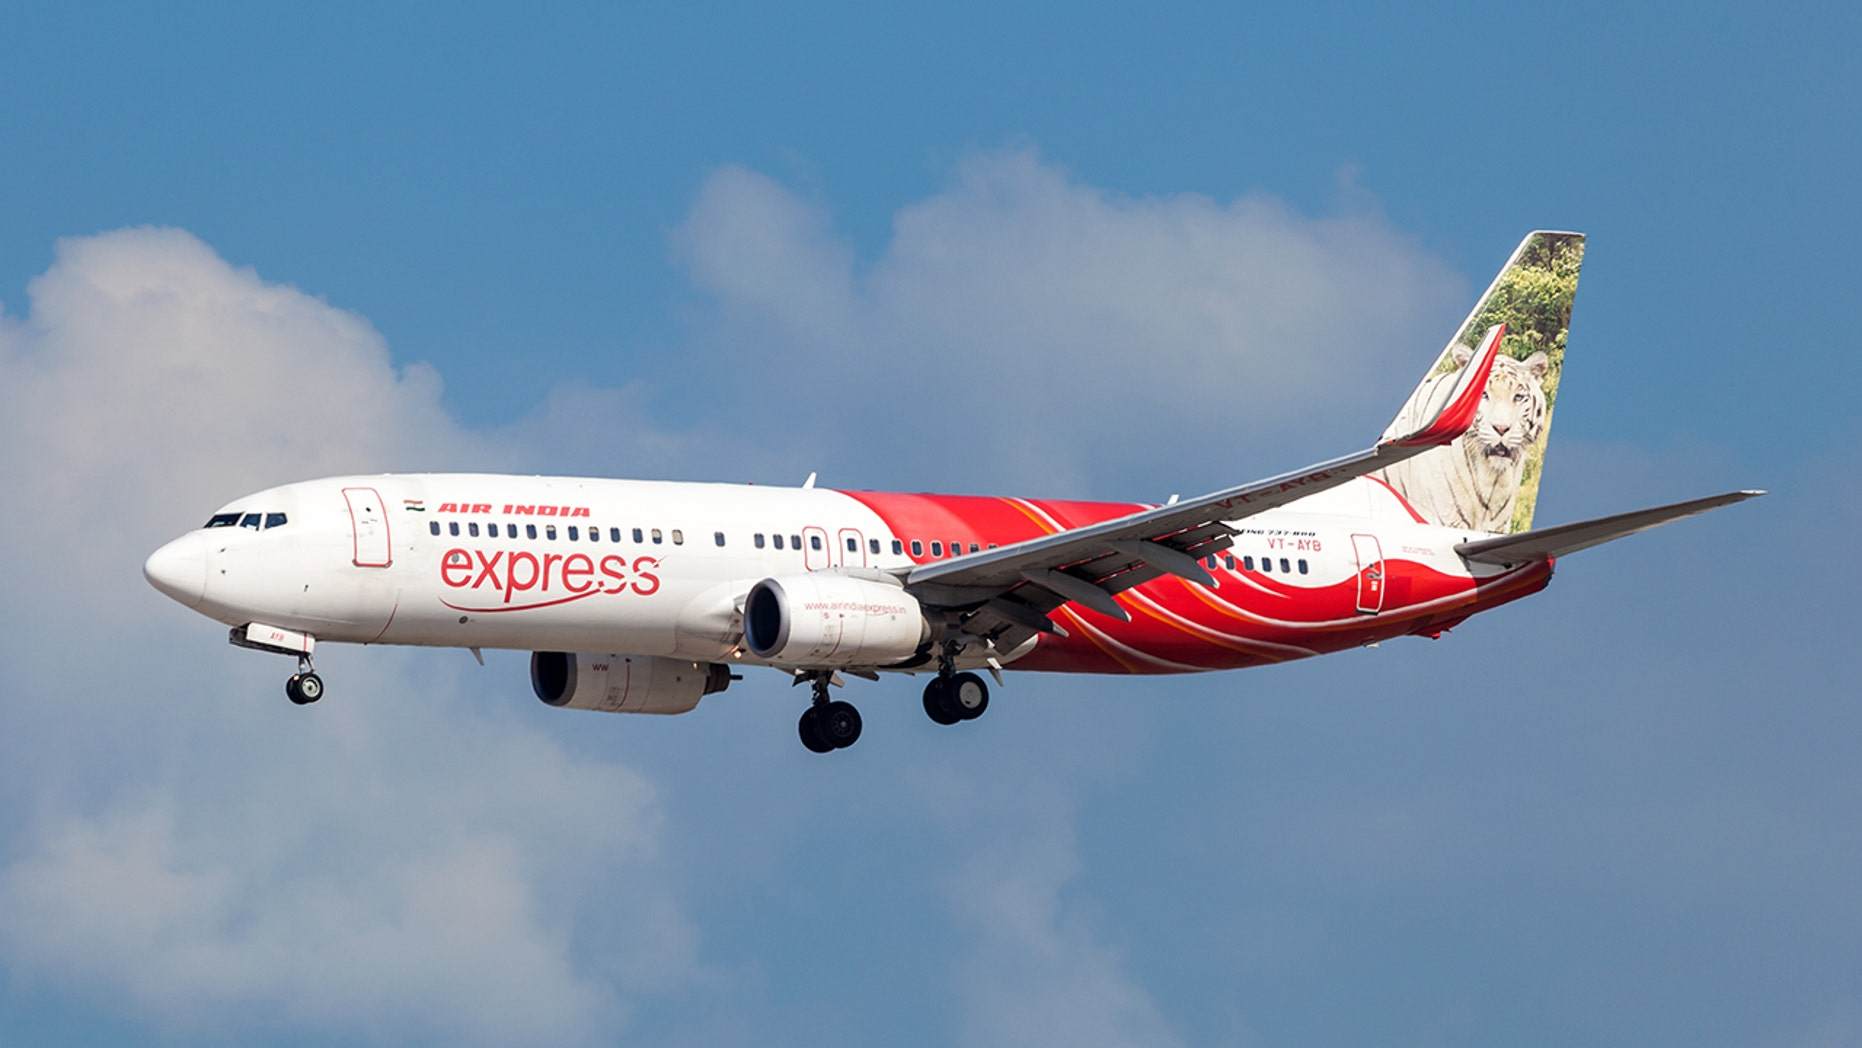 An Air India Express passenger stripped naked and started walking down the aisle, according to reports.